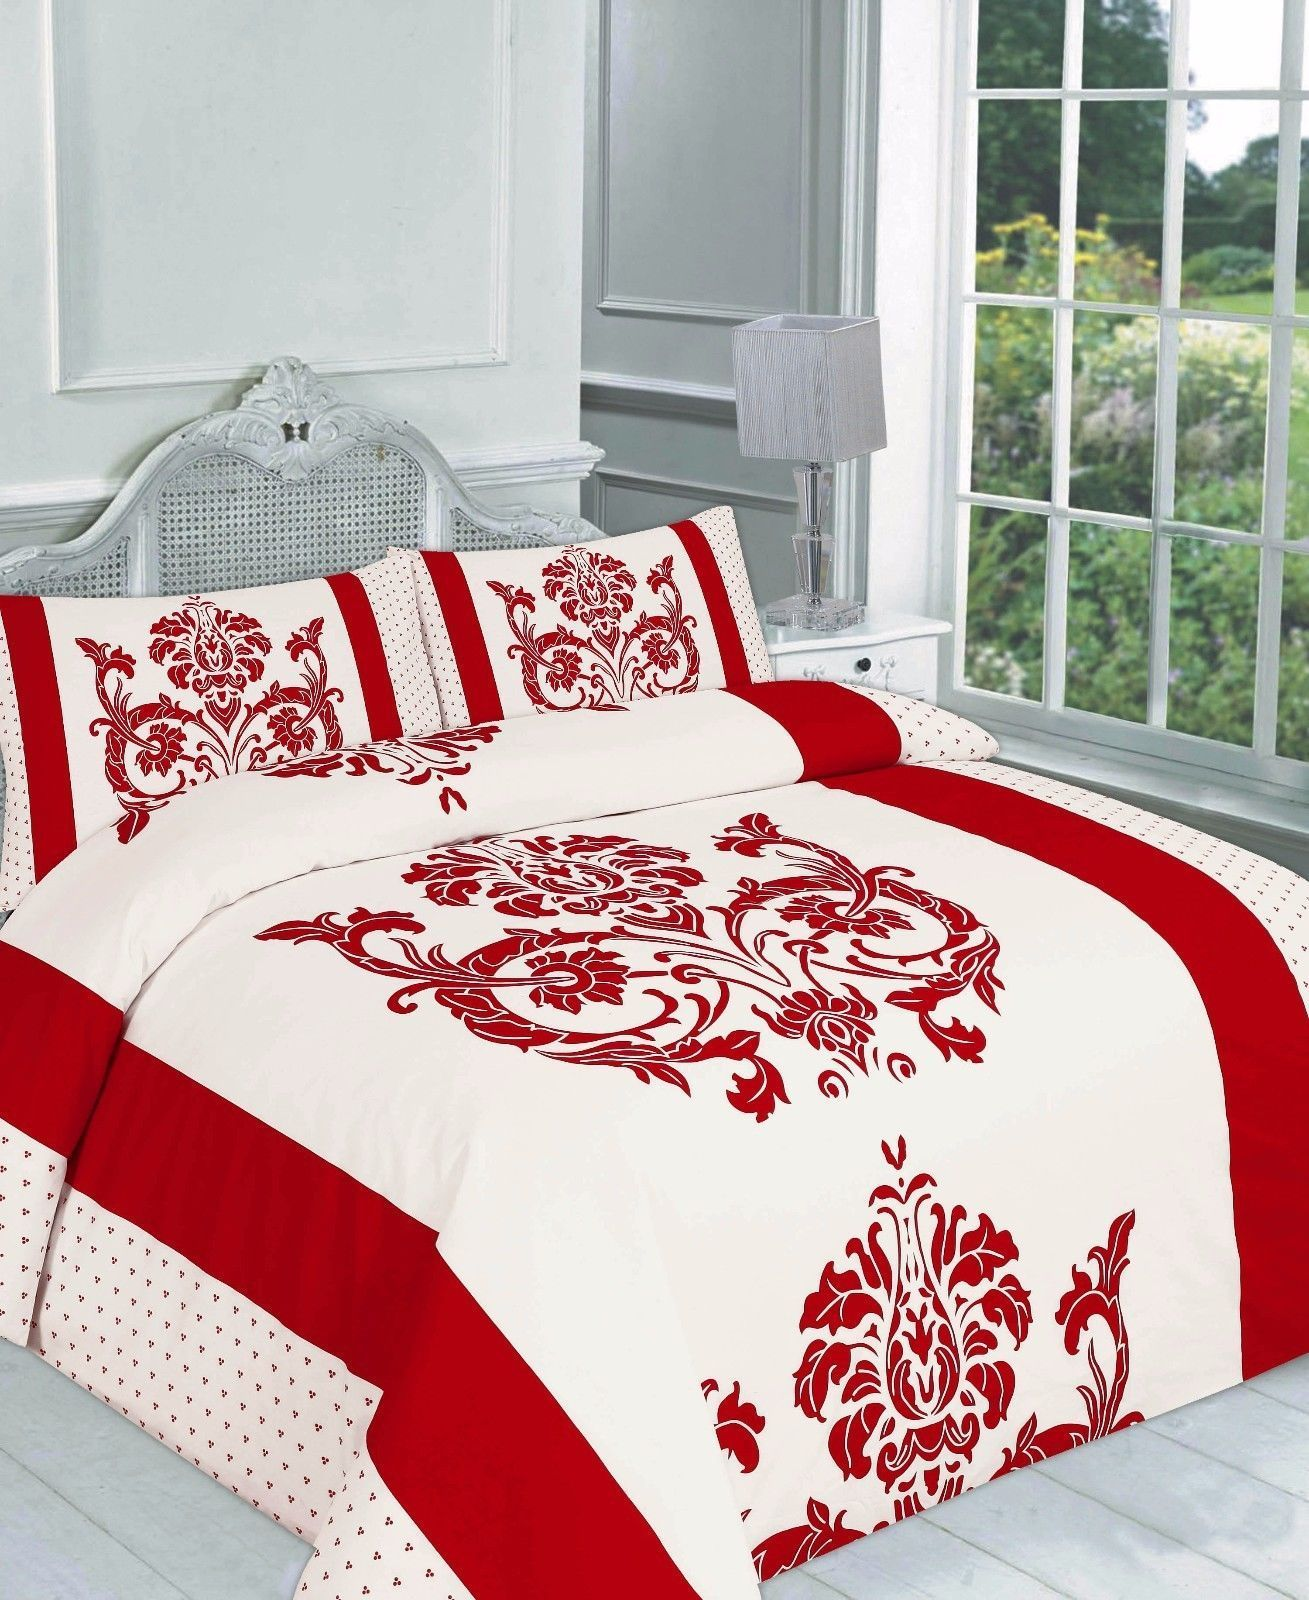 single red football goal duvet cover bugs set little